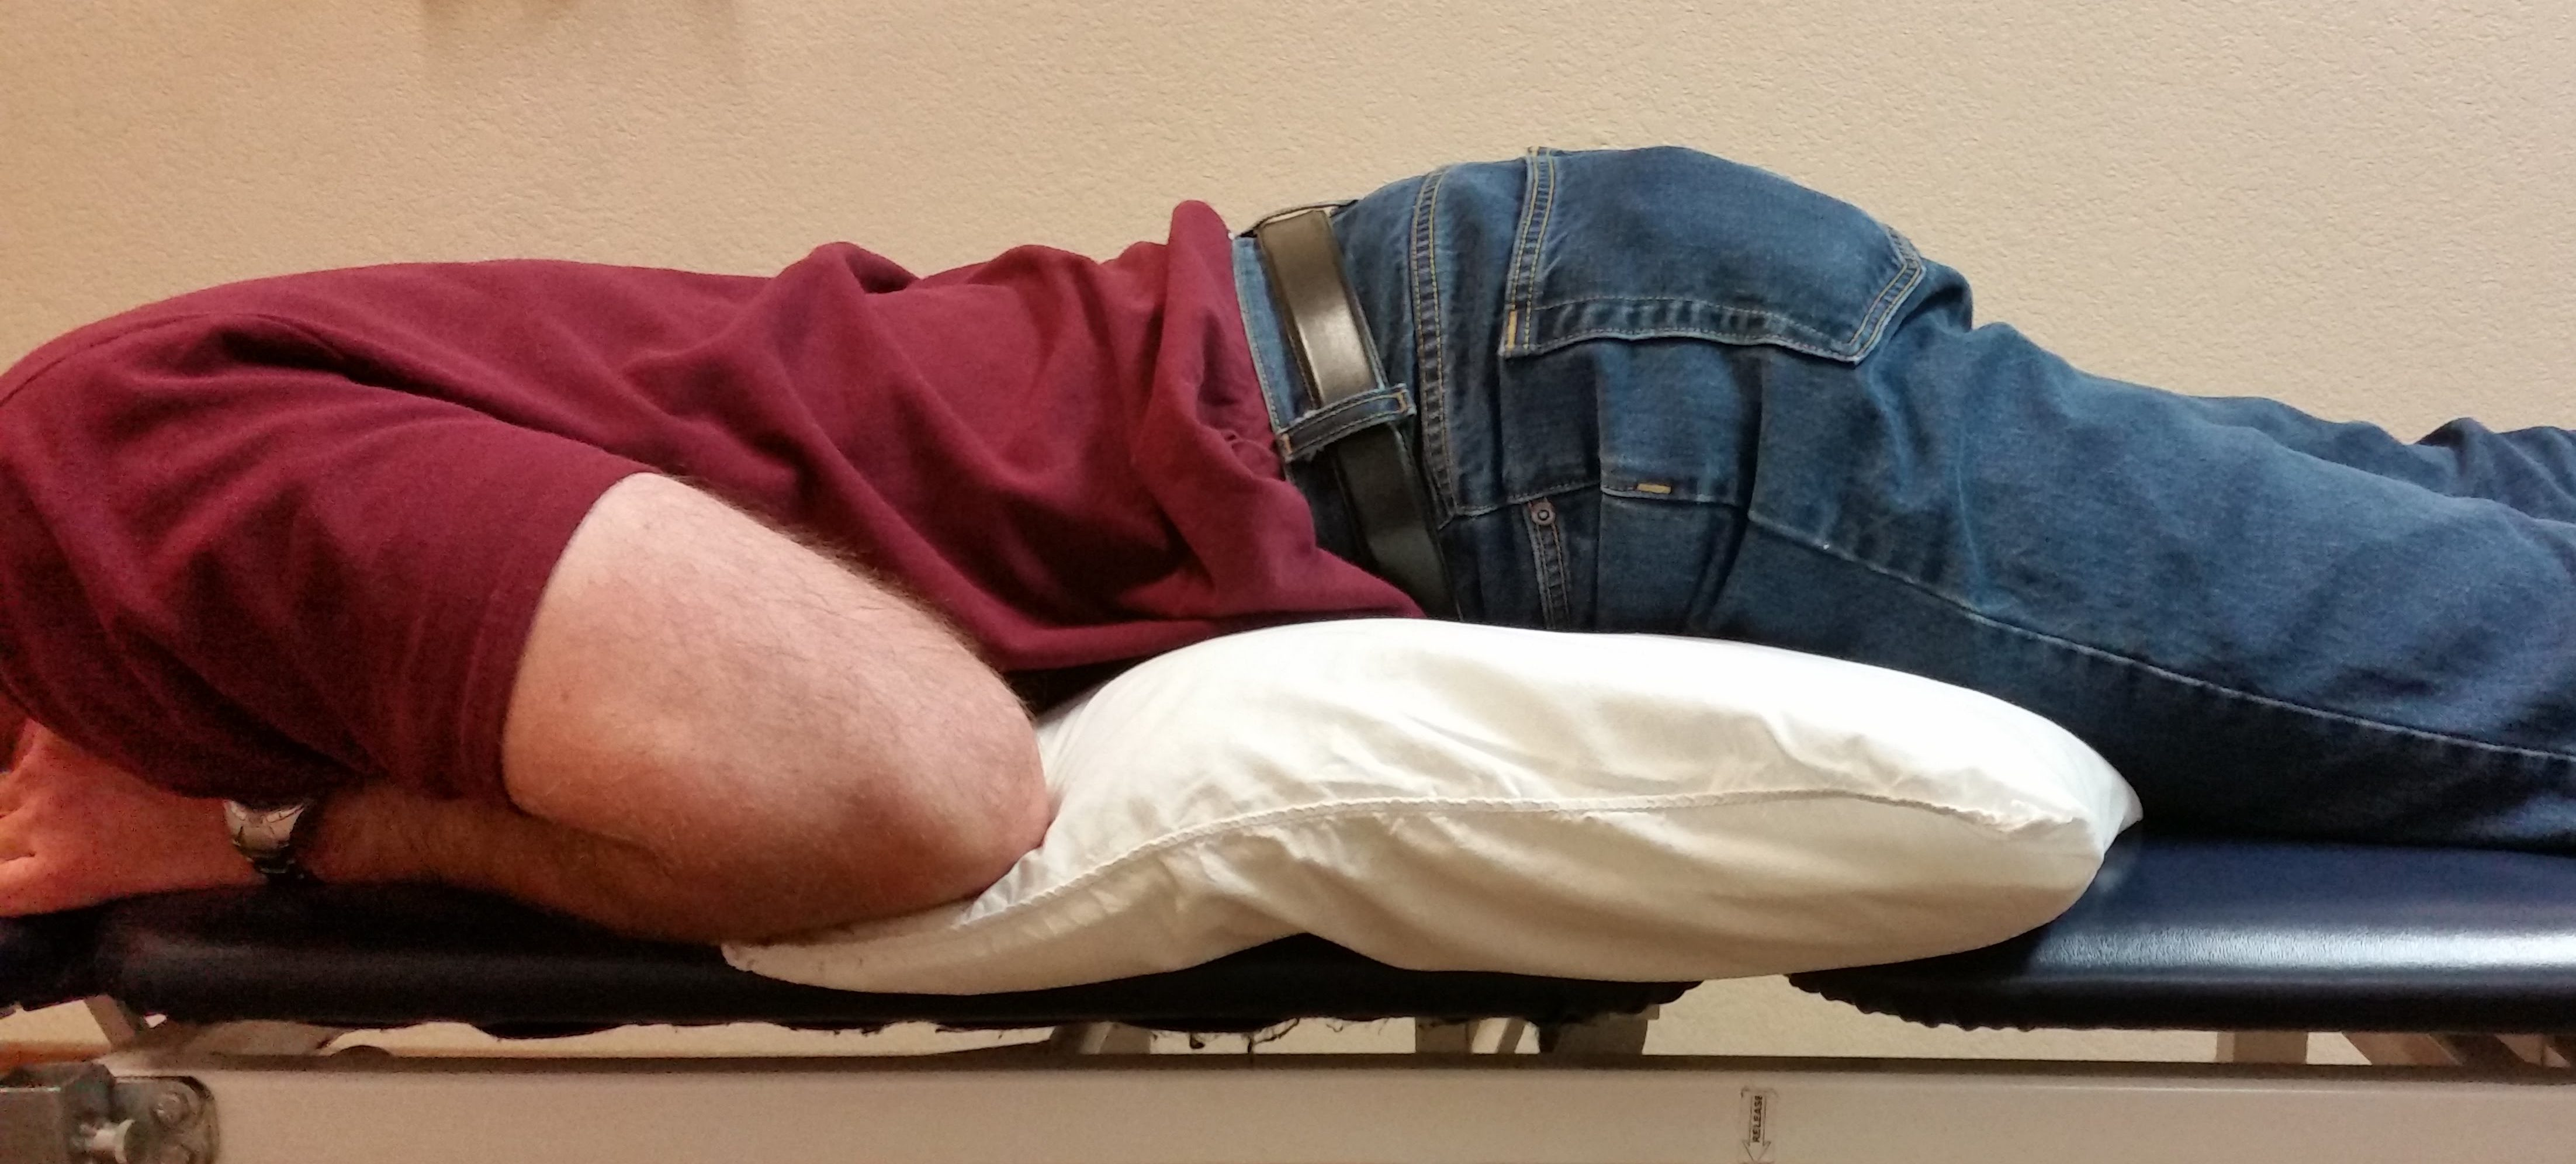 How To Prevent Back Pain When You Sleep Vance Physical